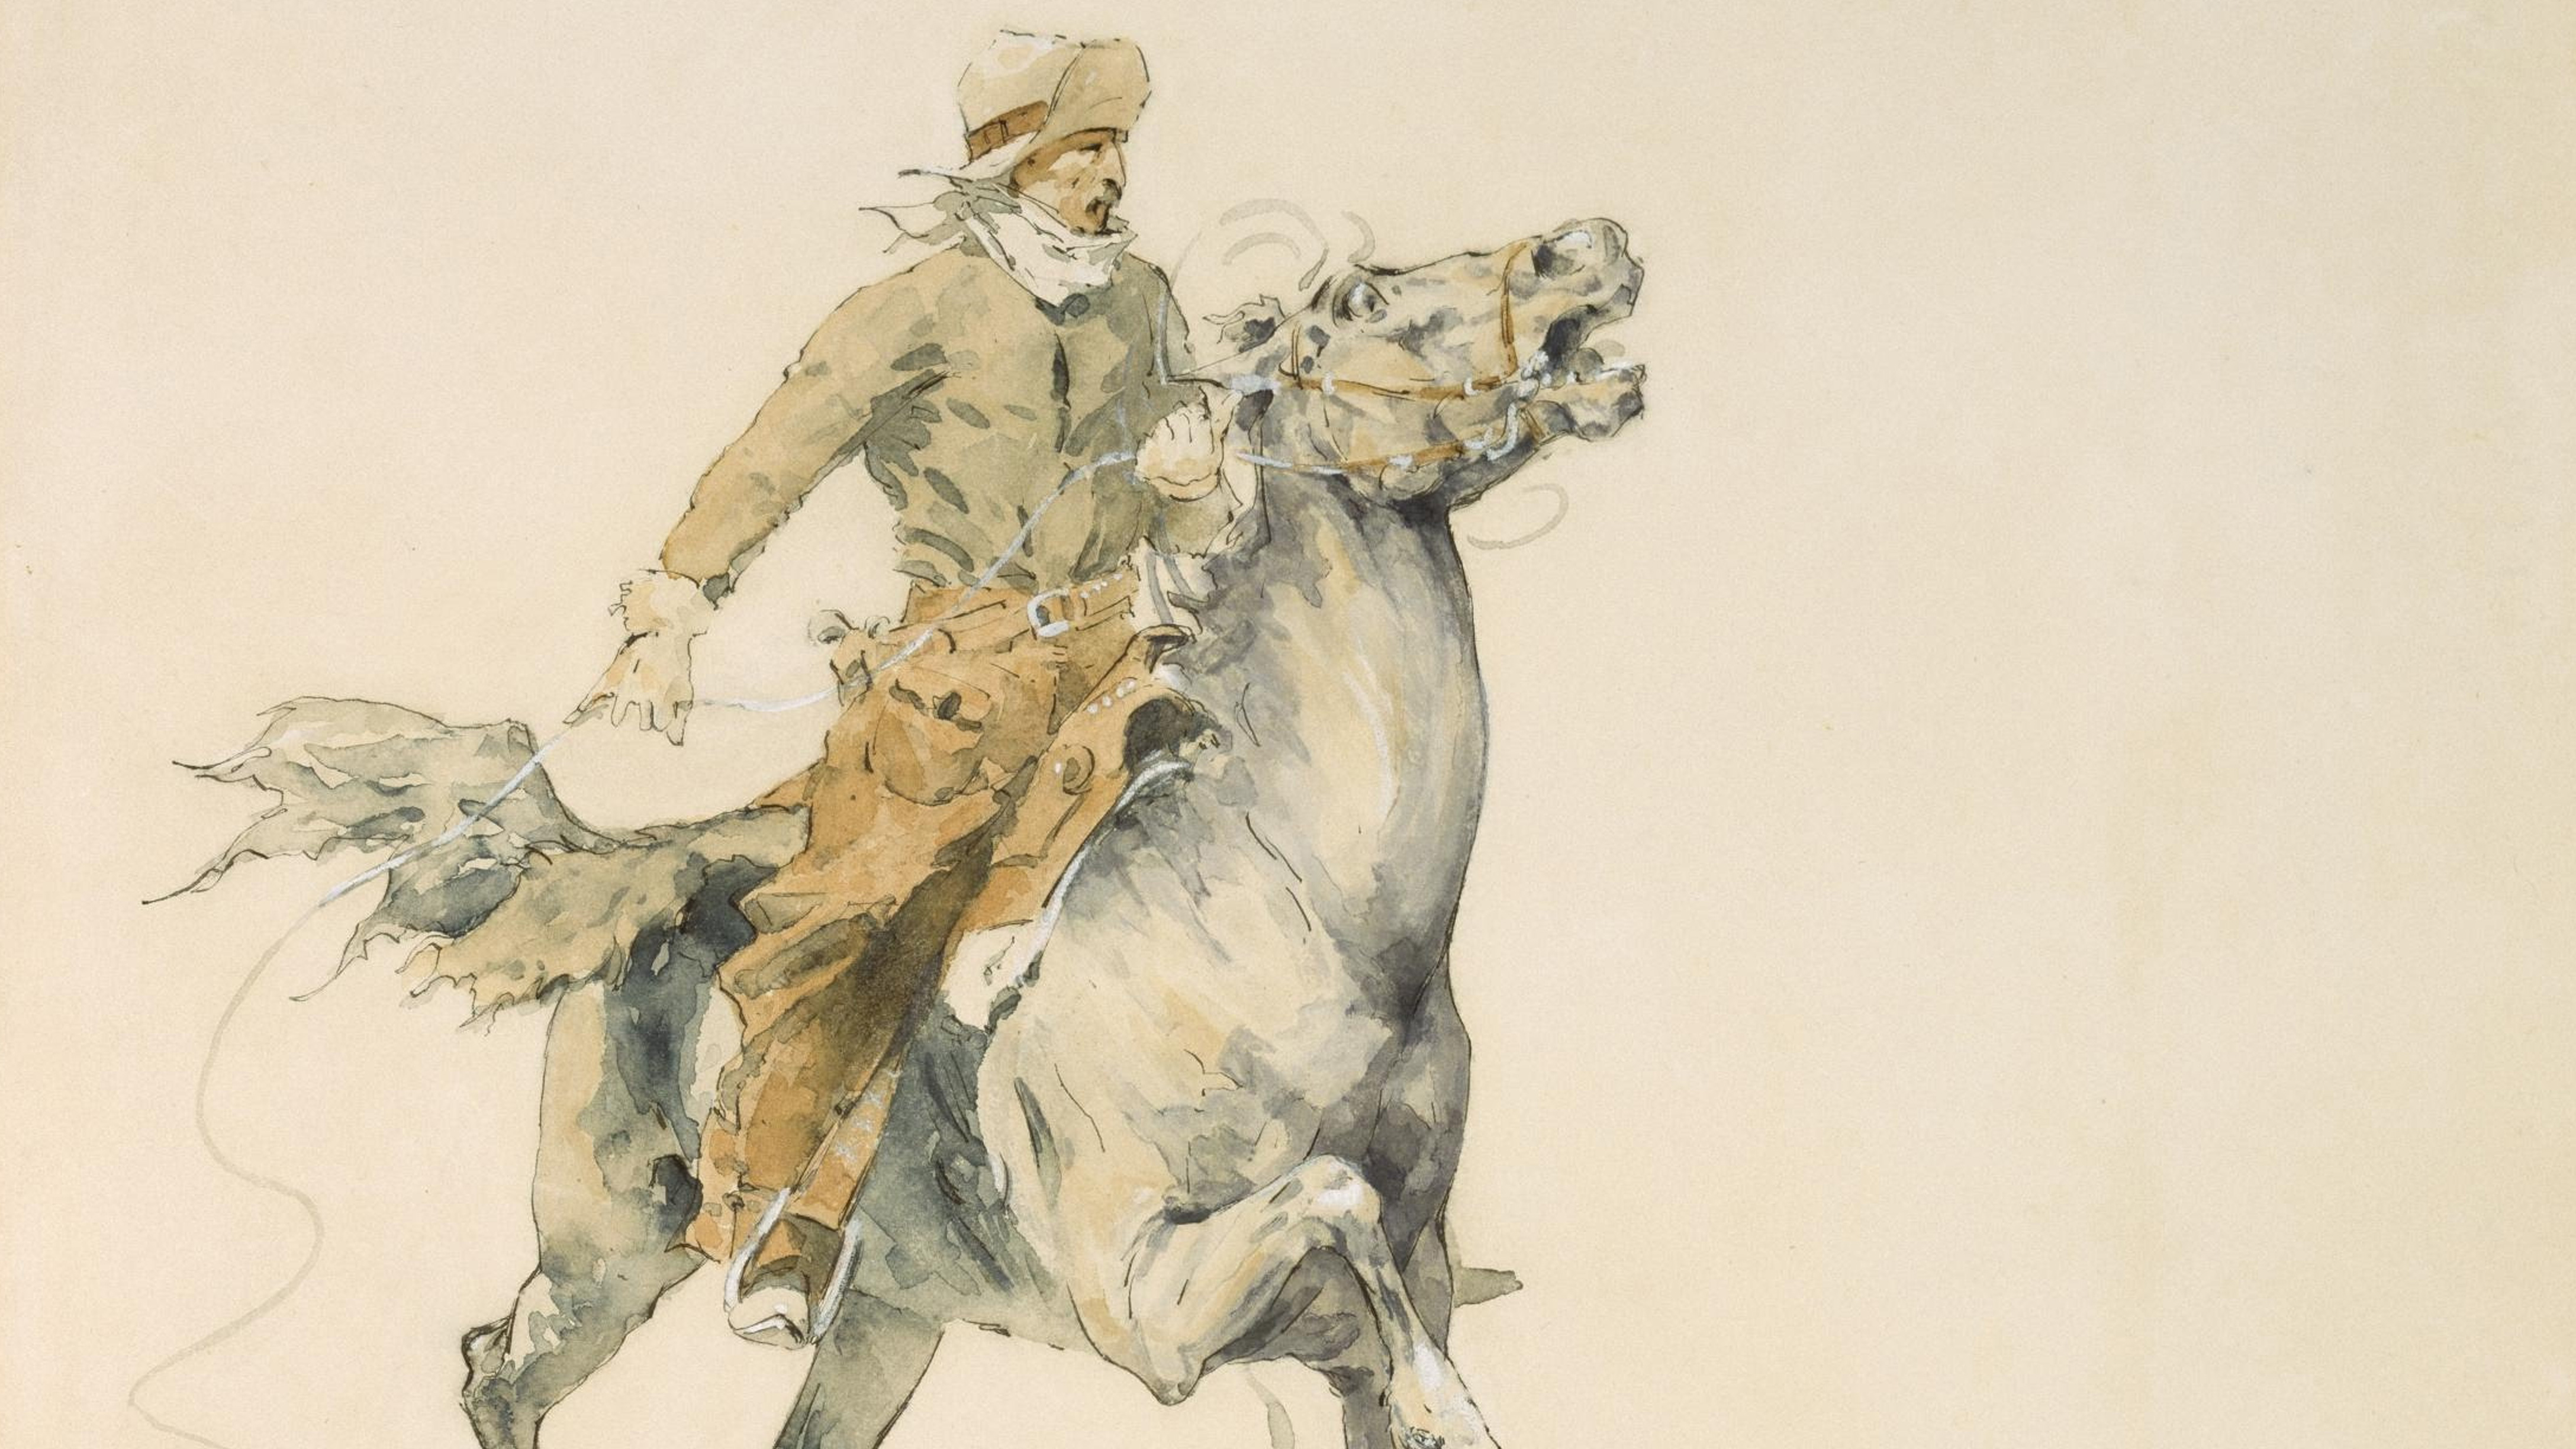 More on Frederic Remington